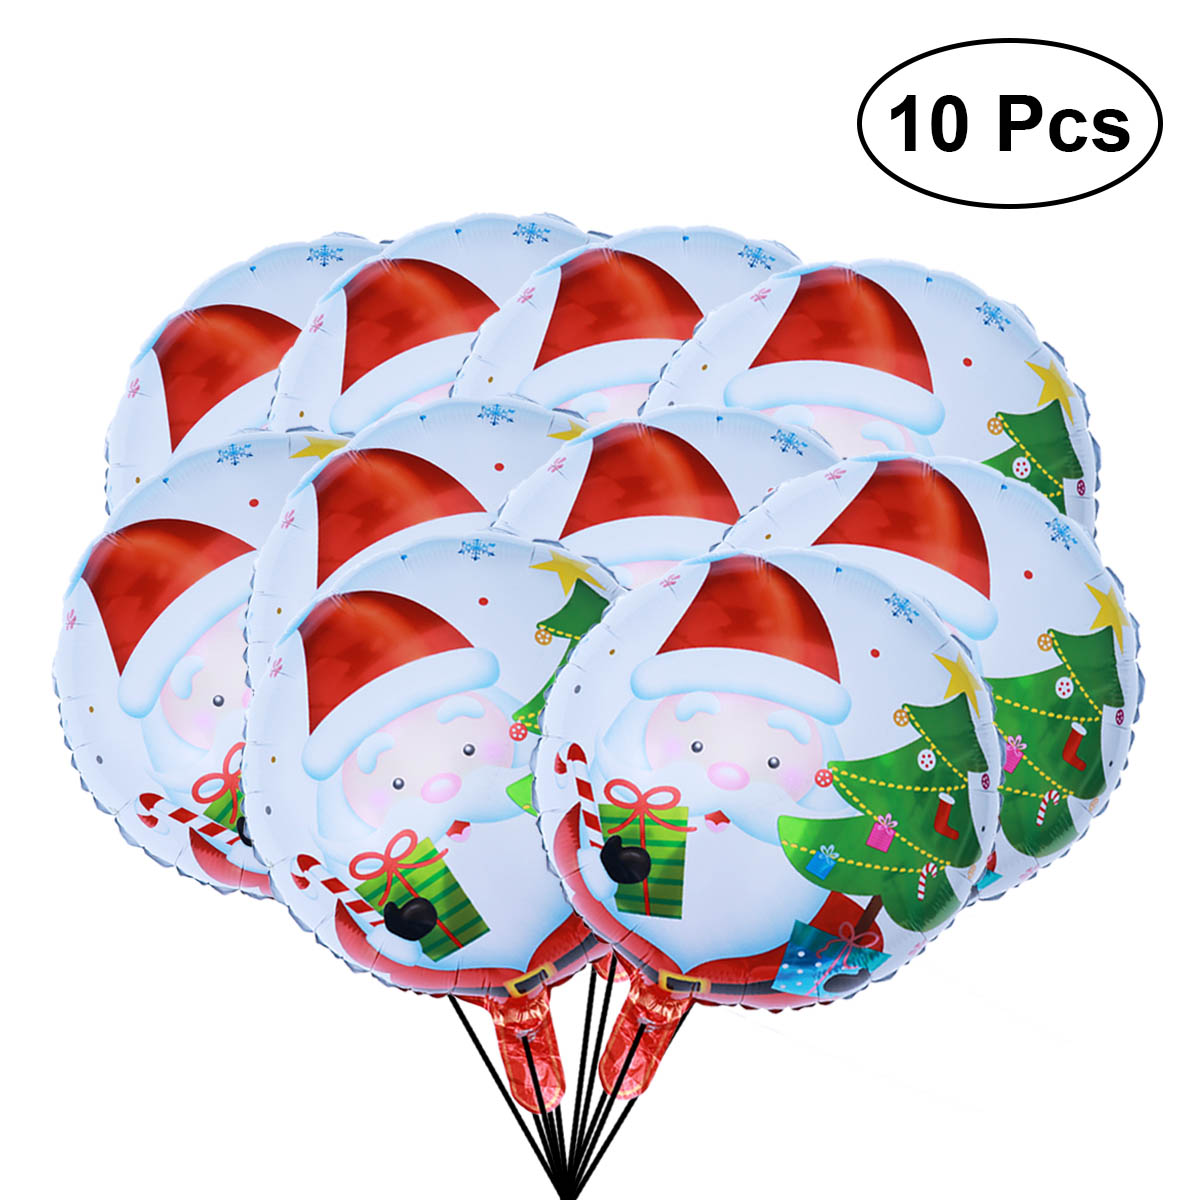 10pcs 18inch Balloons Reuseable Christmas Aluminum Foil Lovely Creative Latex Balloons for Decorating Christmas Party